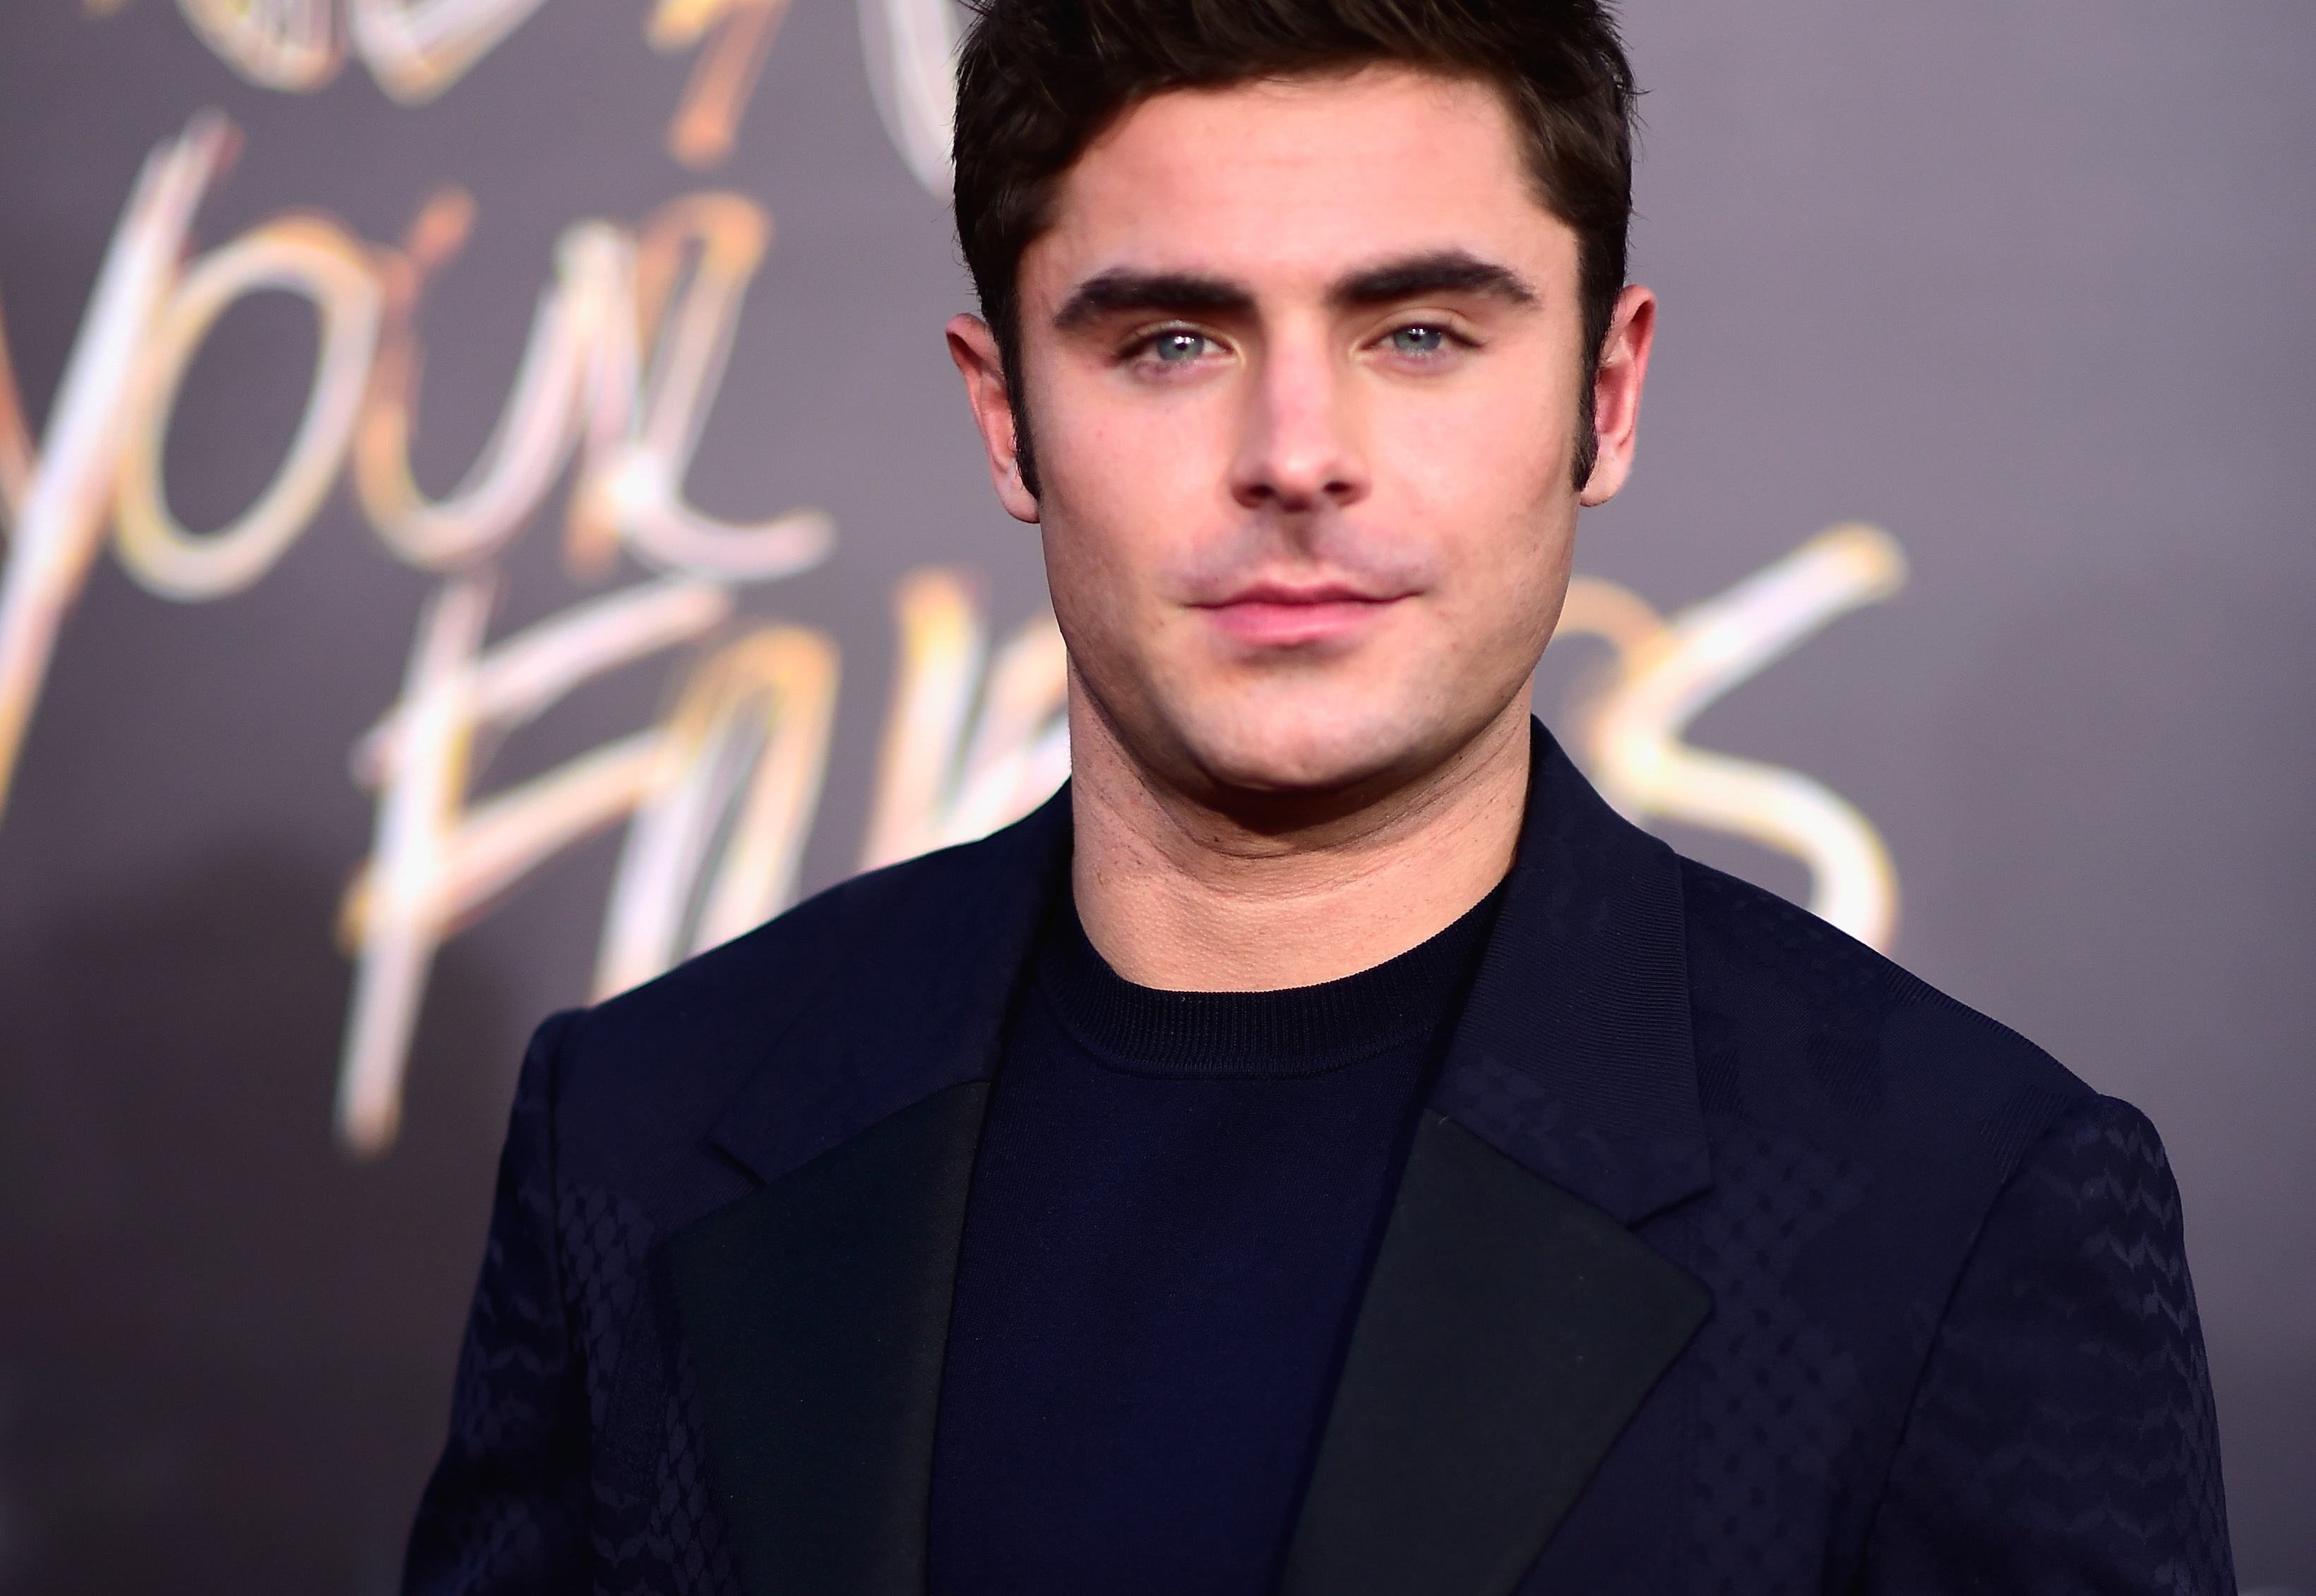 Zac Efron Wallpapers High Resolution And Quality Download